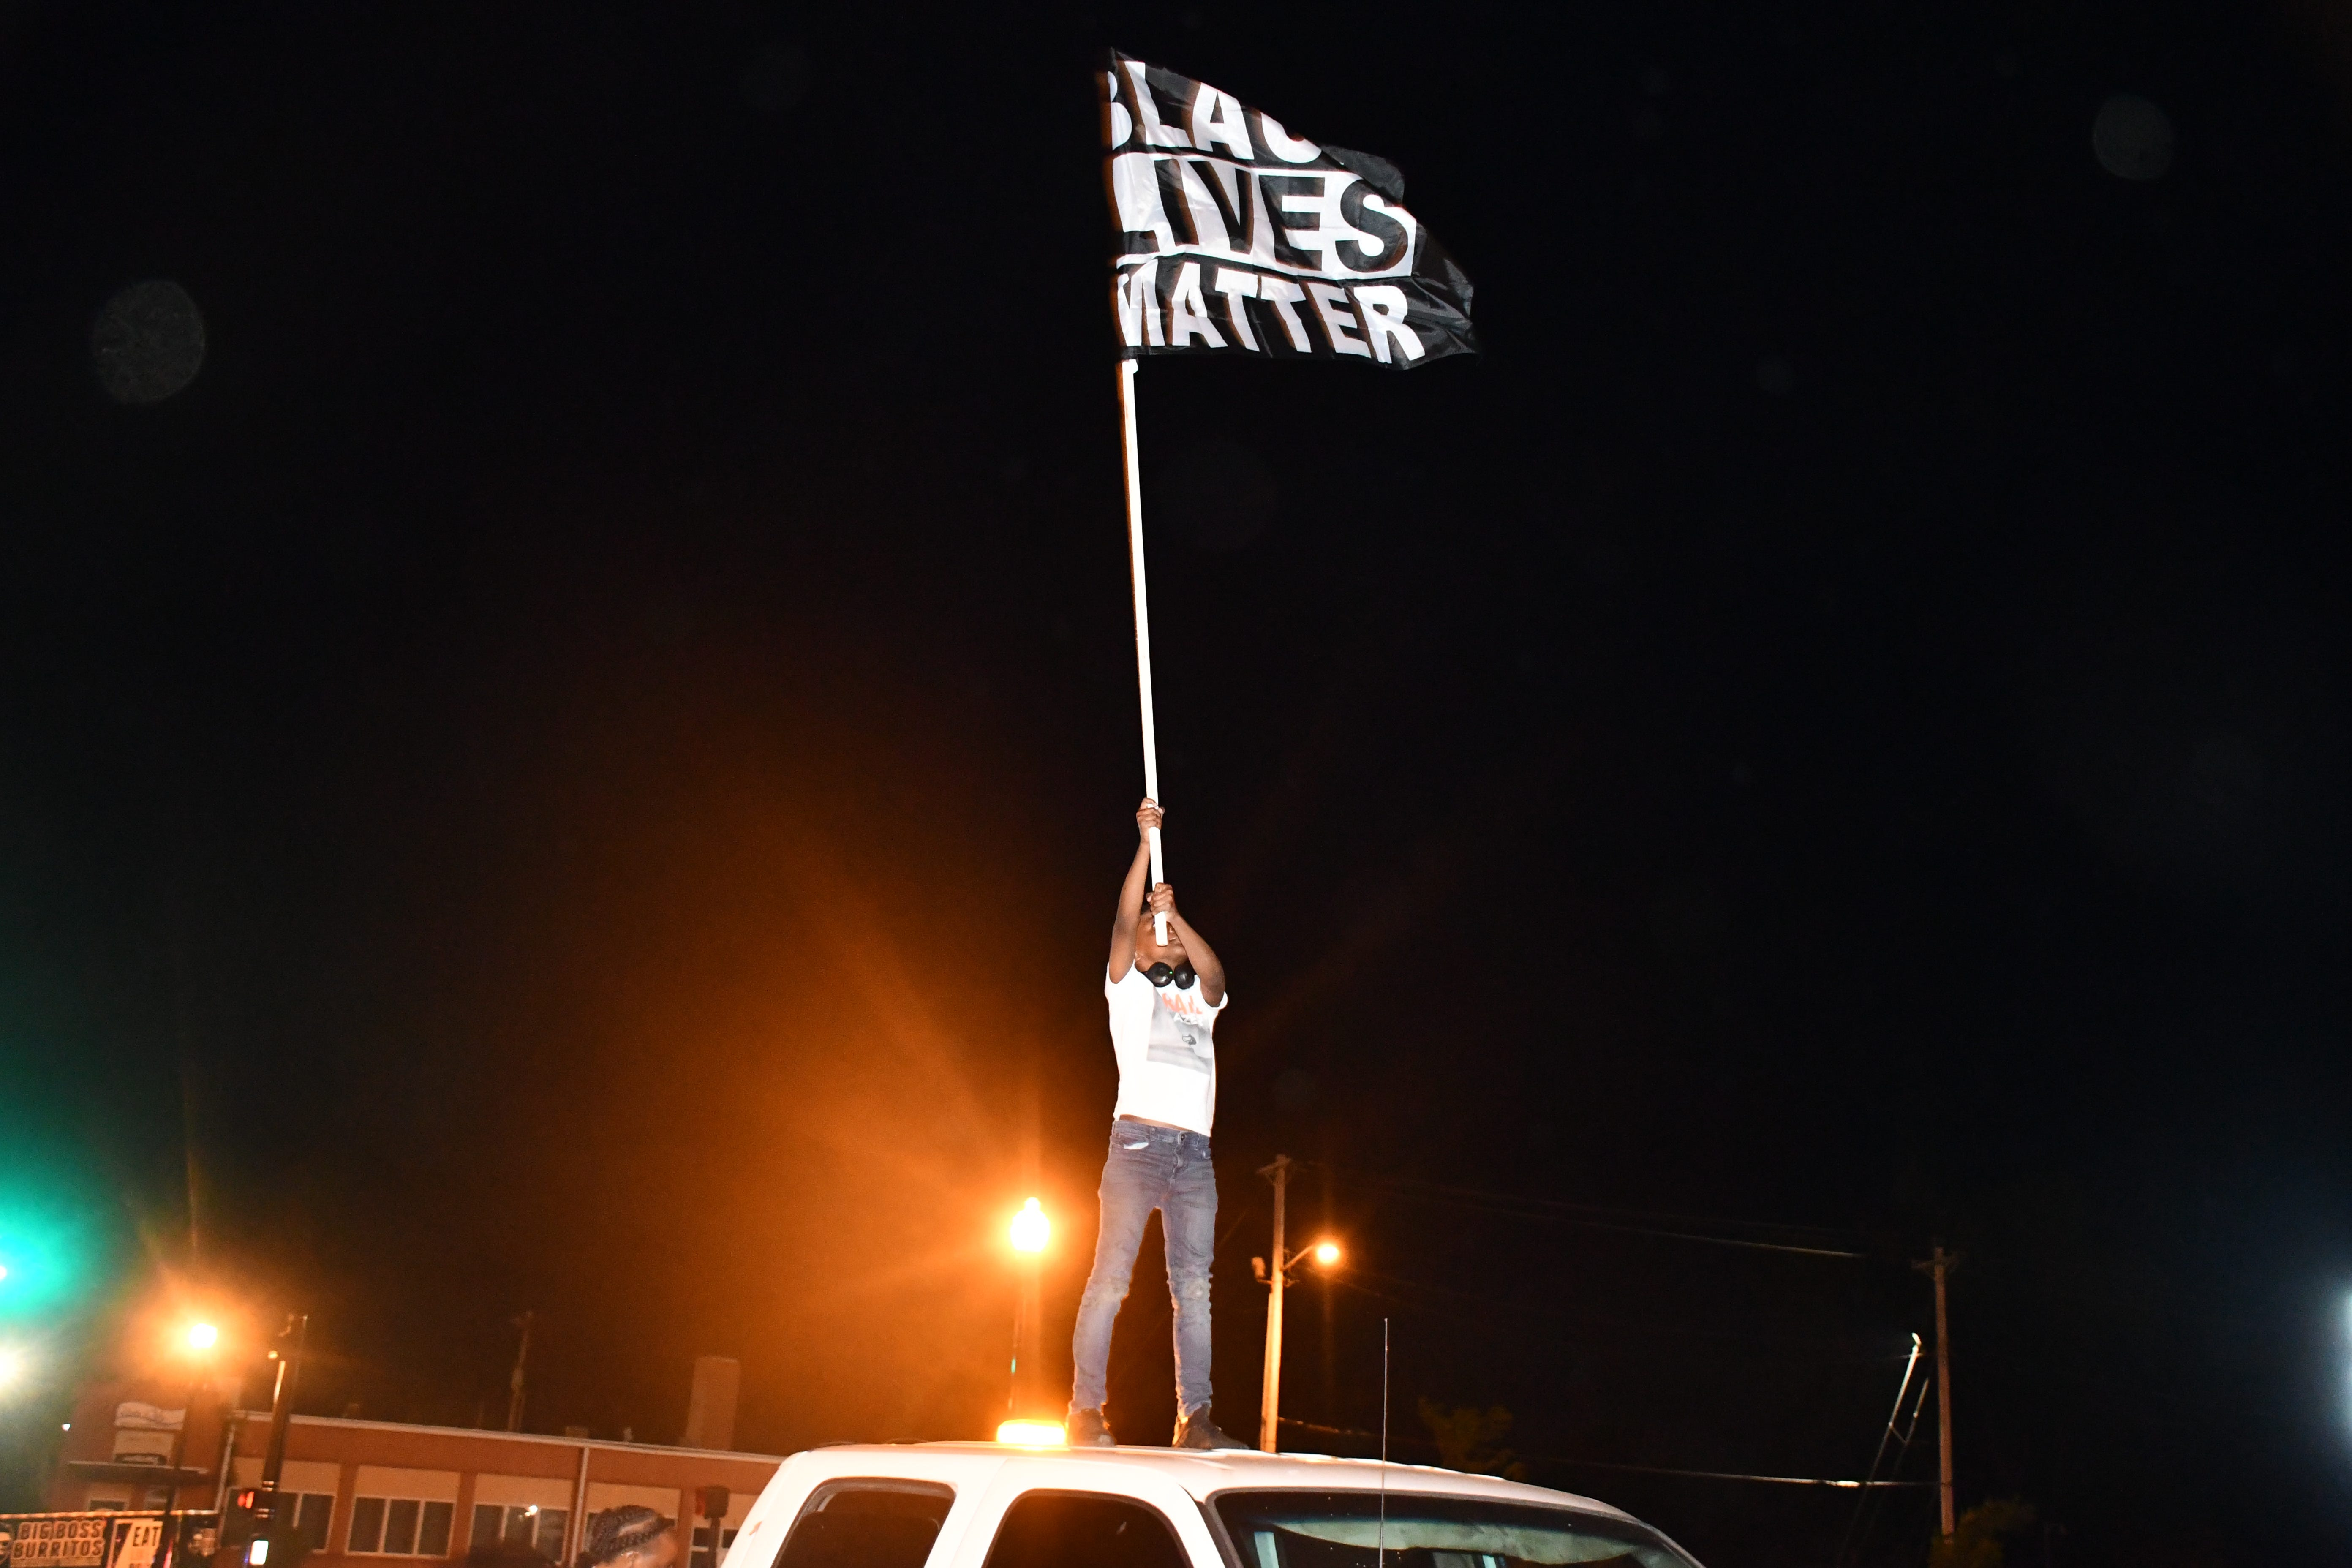 Release the tapes : Protesters demand footage after Sheriff identified deputies involved in fatal shooting of Andrew Brown Jr.